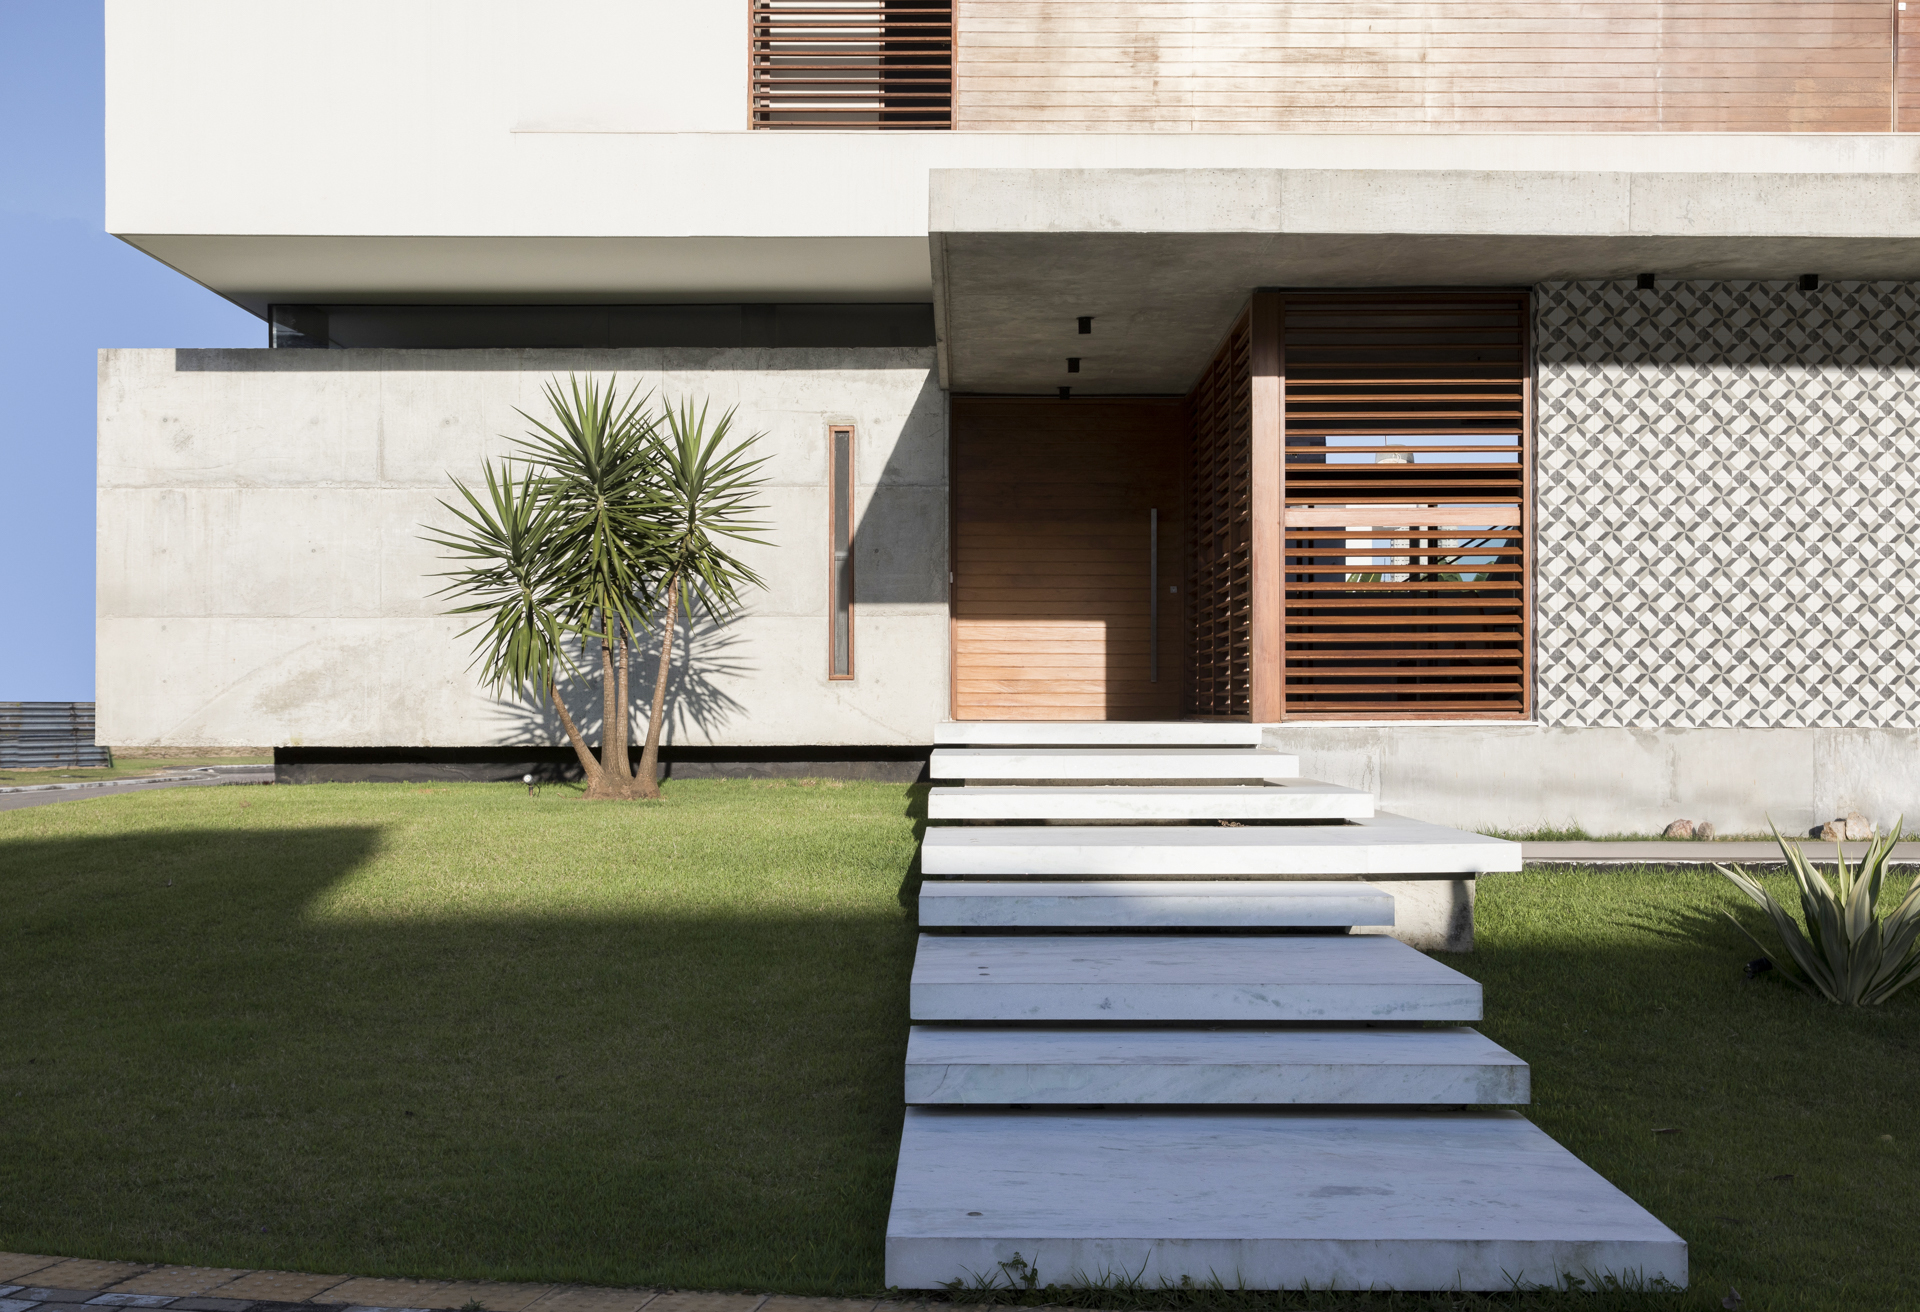 2_CASA_IF_-_Martins_Lucena_Arquitetos-5.jpg